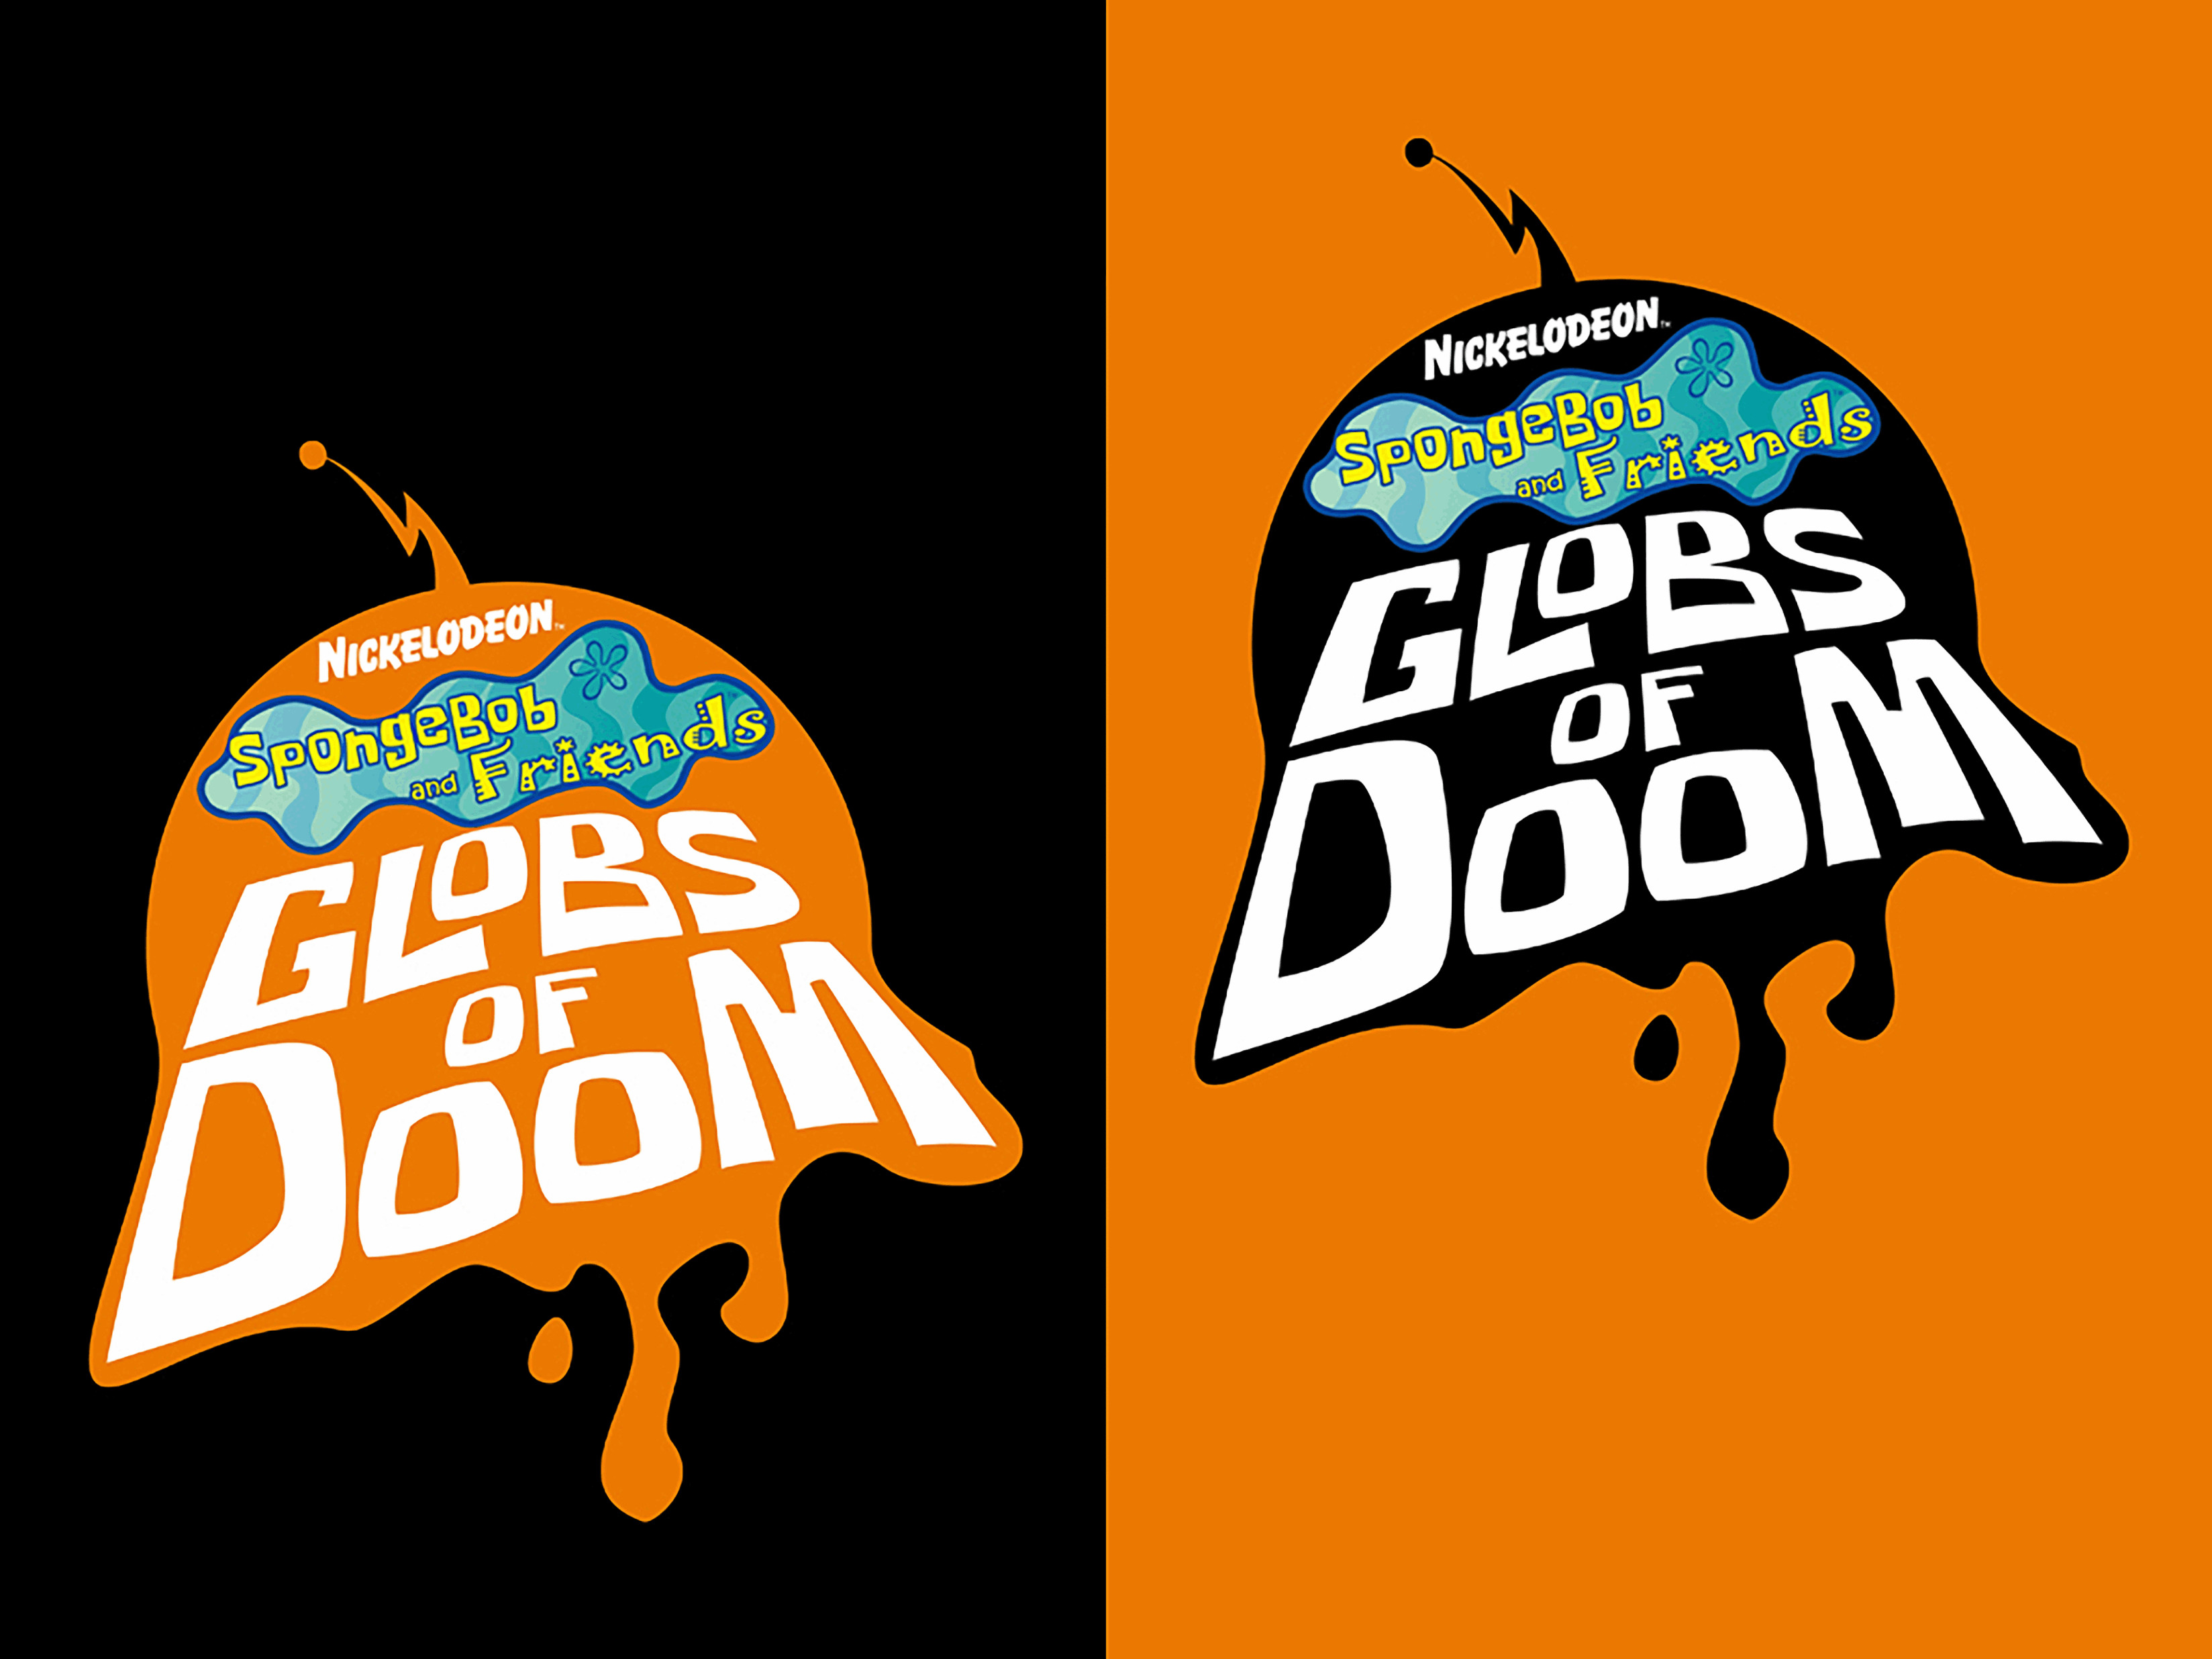 (2007) Logo: Globs of Doom Prototype